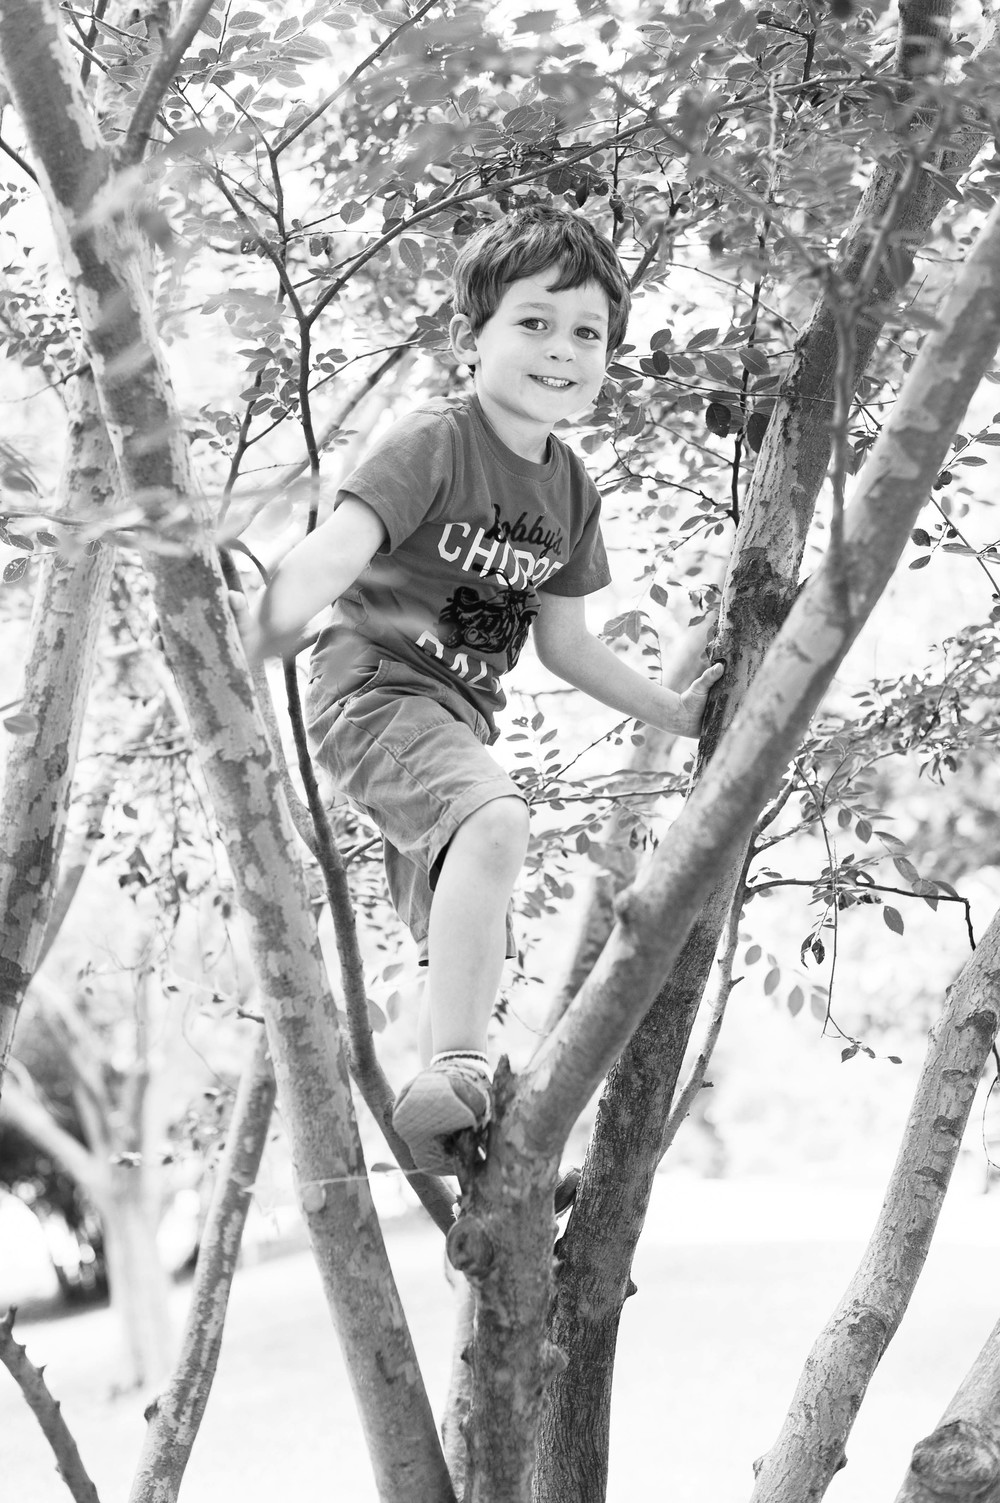 So happy in his old climbin' tree.